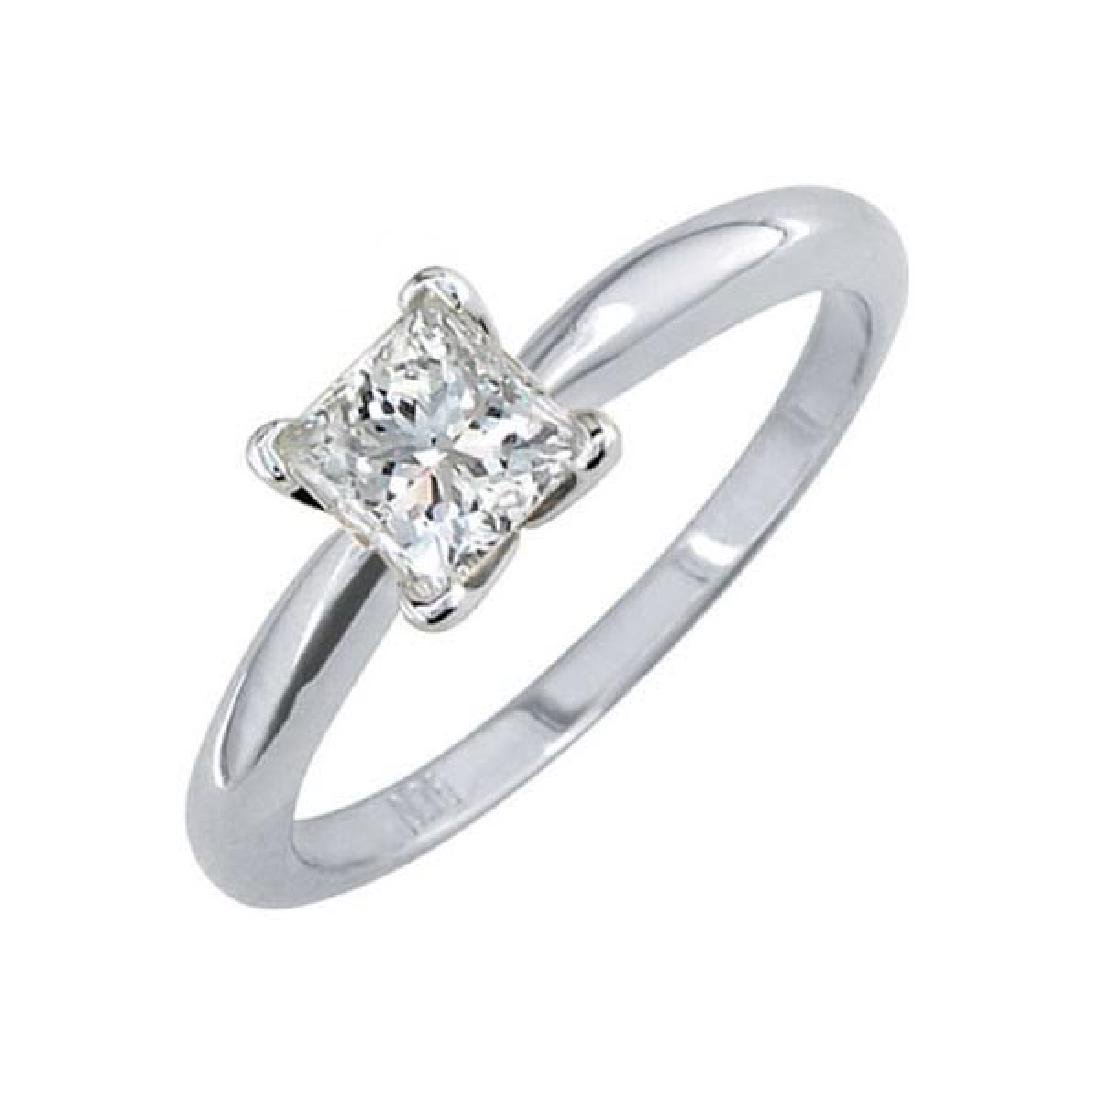 Certified 0.97 CTW Princess Diamond Solitaire 14k Ring